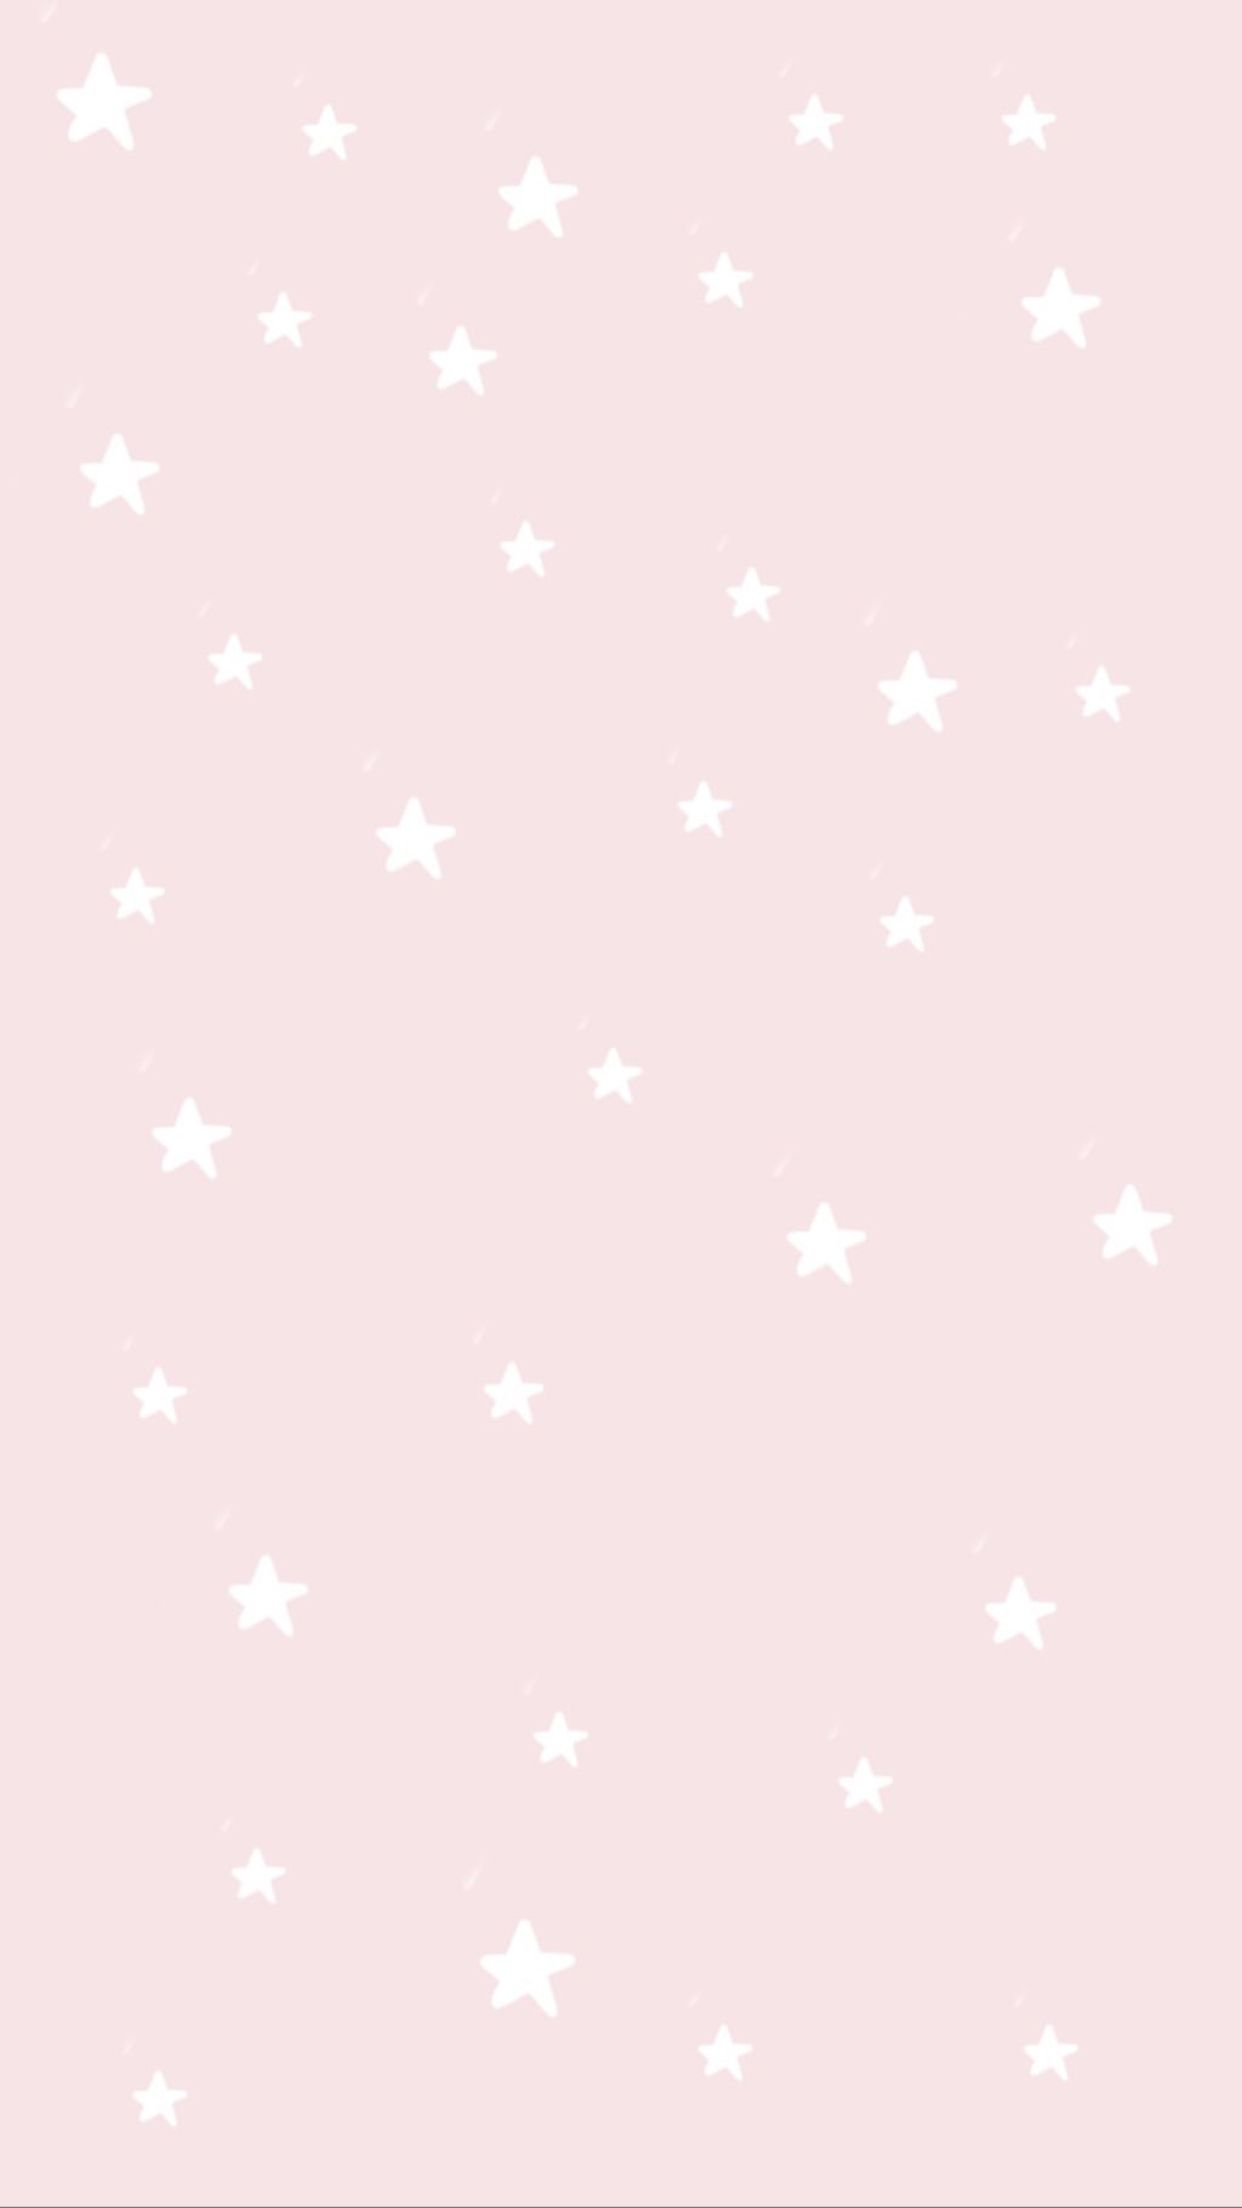 Pin by 𝐛𝐞𝐥𝐥𝐚 on Backgrounds in 2019 Pastel iphone